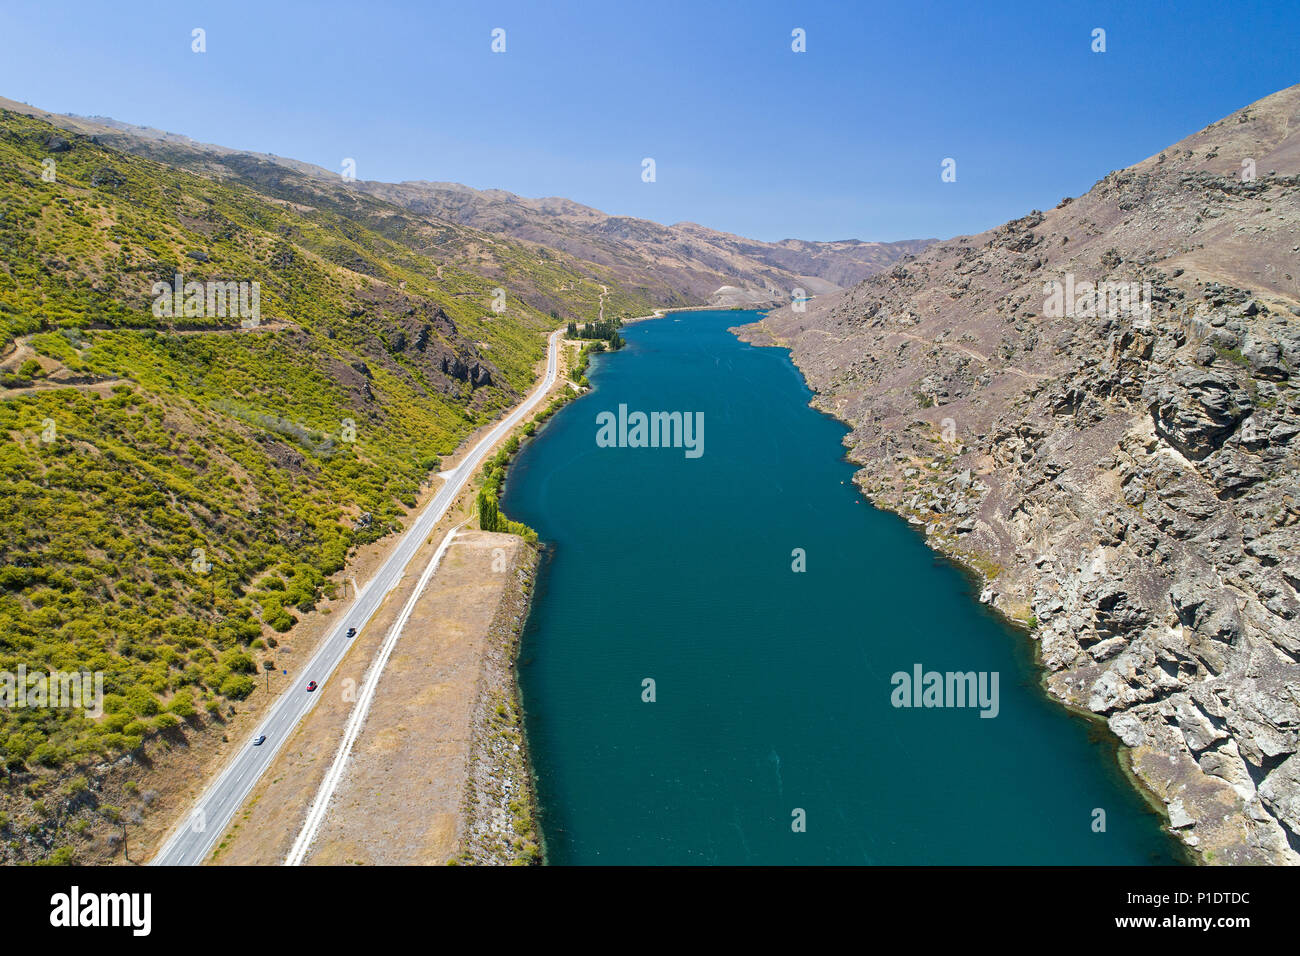 Lake Dunstan and State Highway 8, Cromwell Gorge, Central Otago, South Island, New Zealand - drone aerial - Stock Image